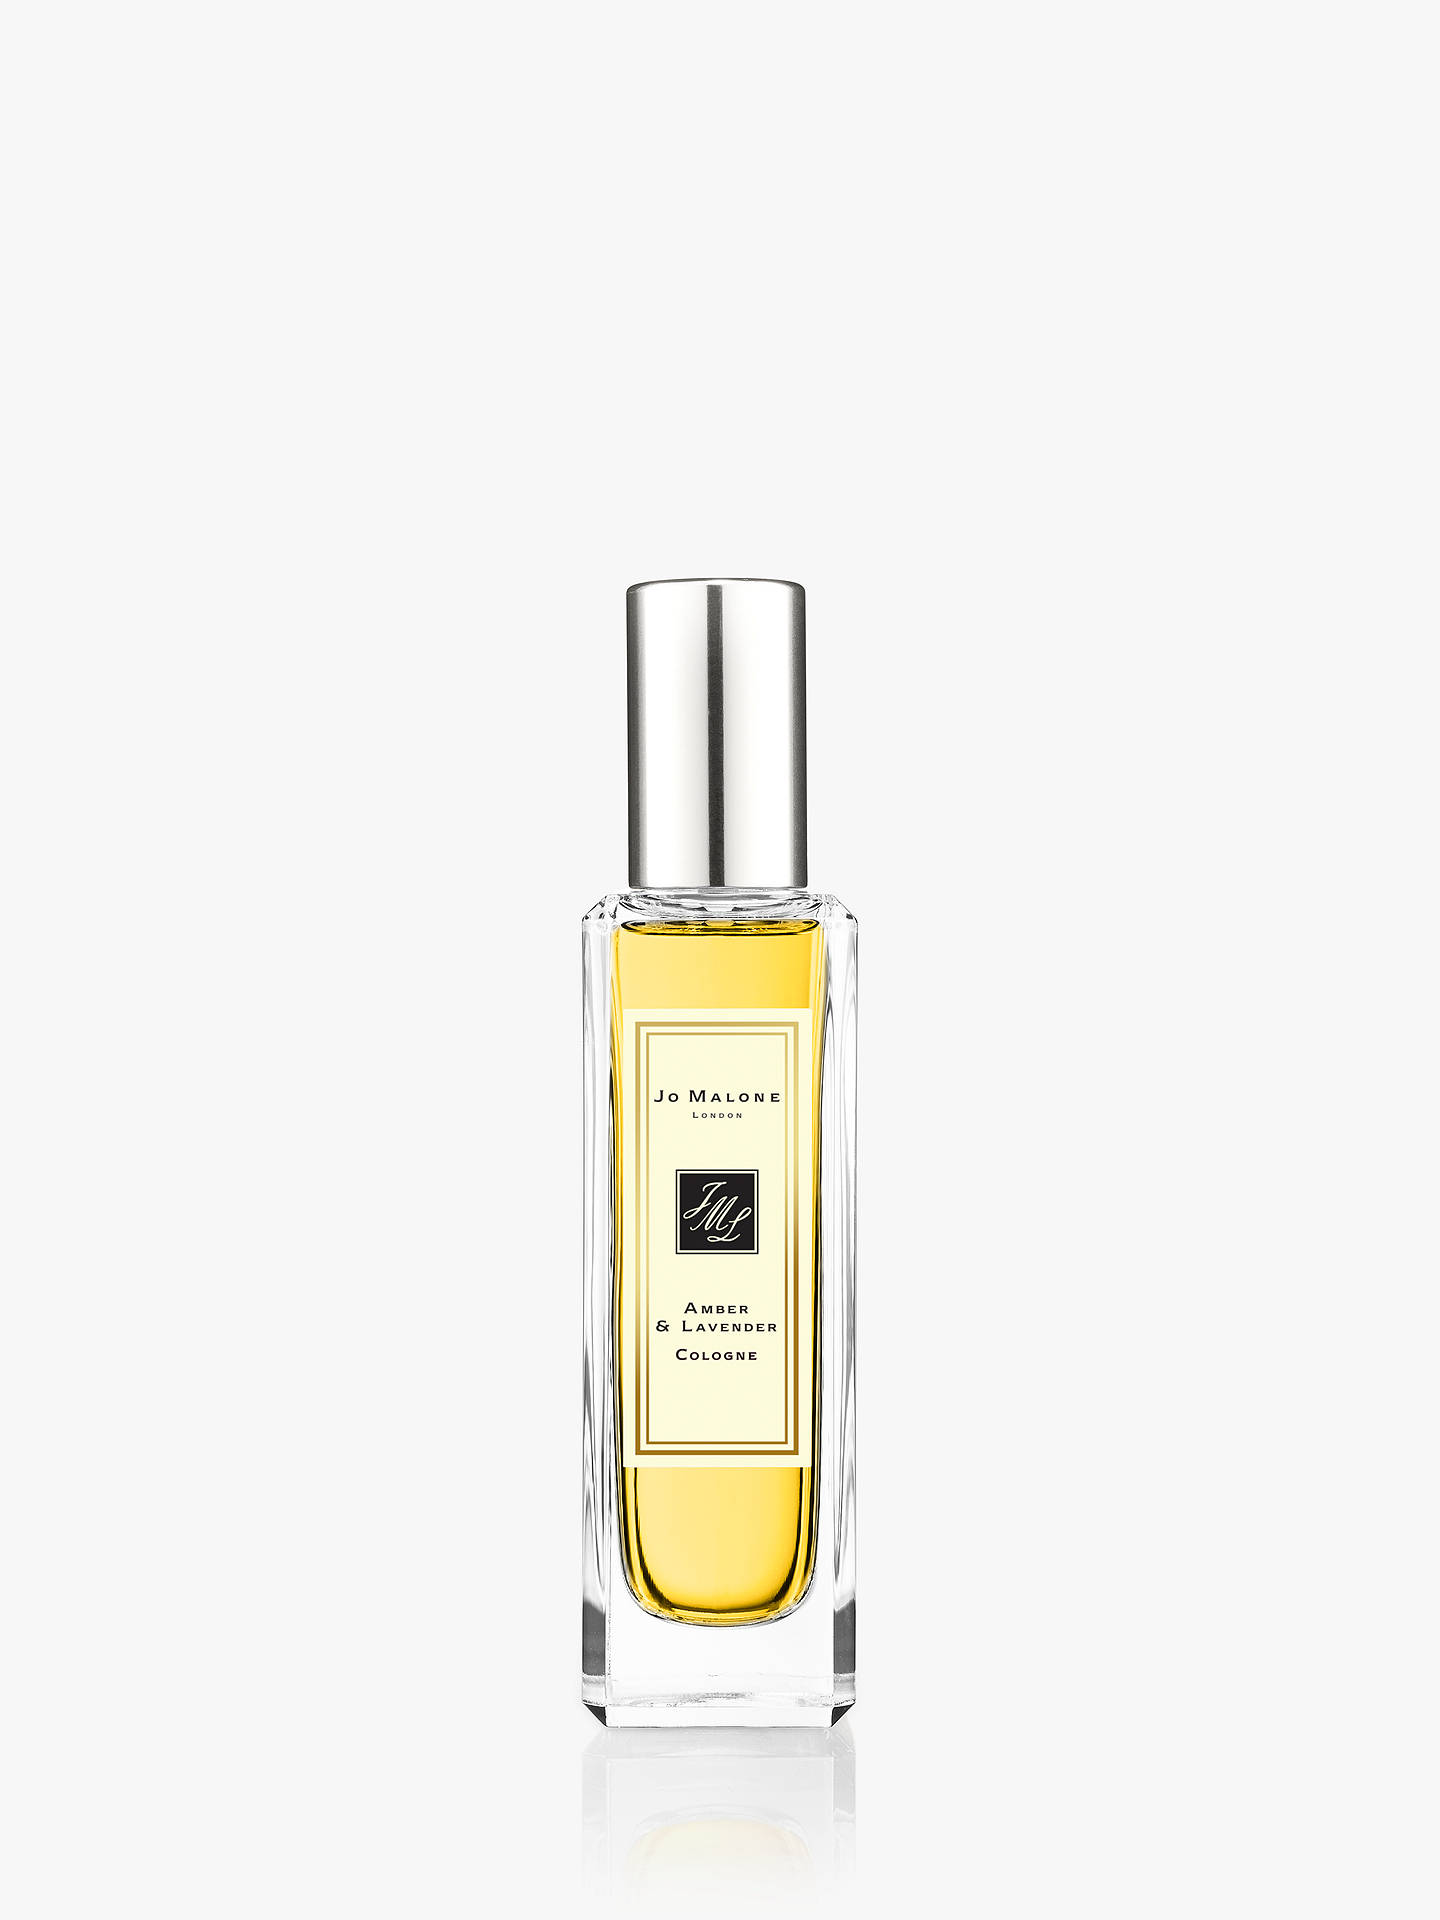 BuyJo Malone London Amber & Lavender Cologne, 30ml Online at johnlewis.com